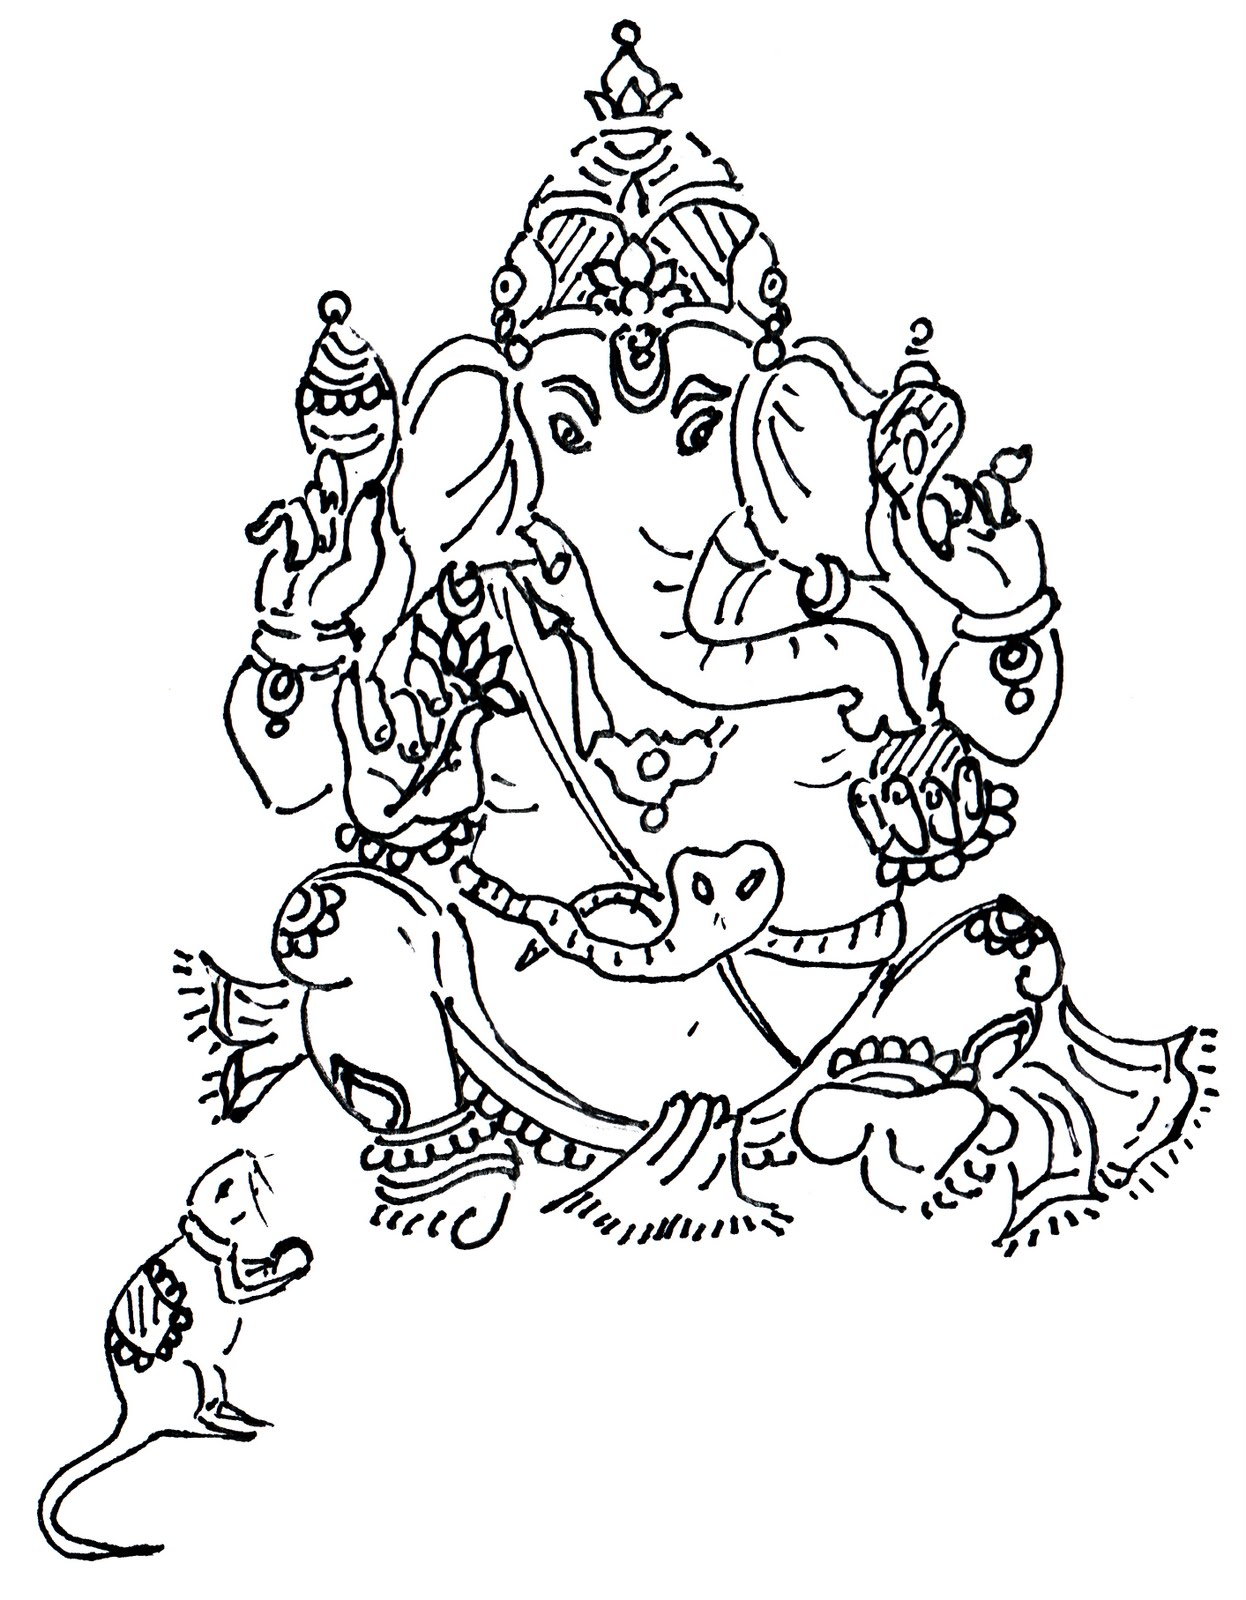 Ganesh Line Drawing : Ganesh images for drawing joy studio design gallery